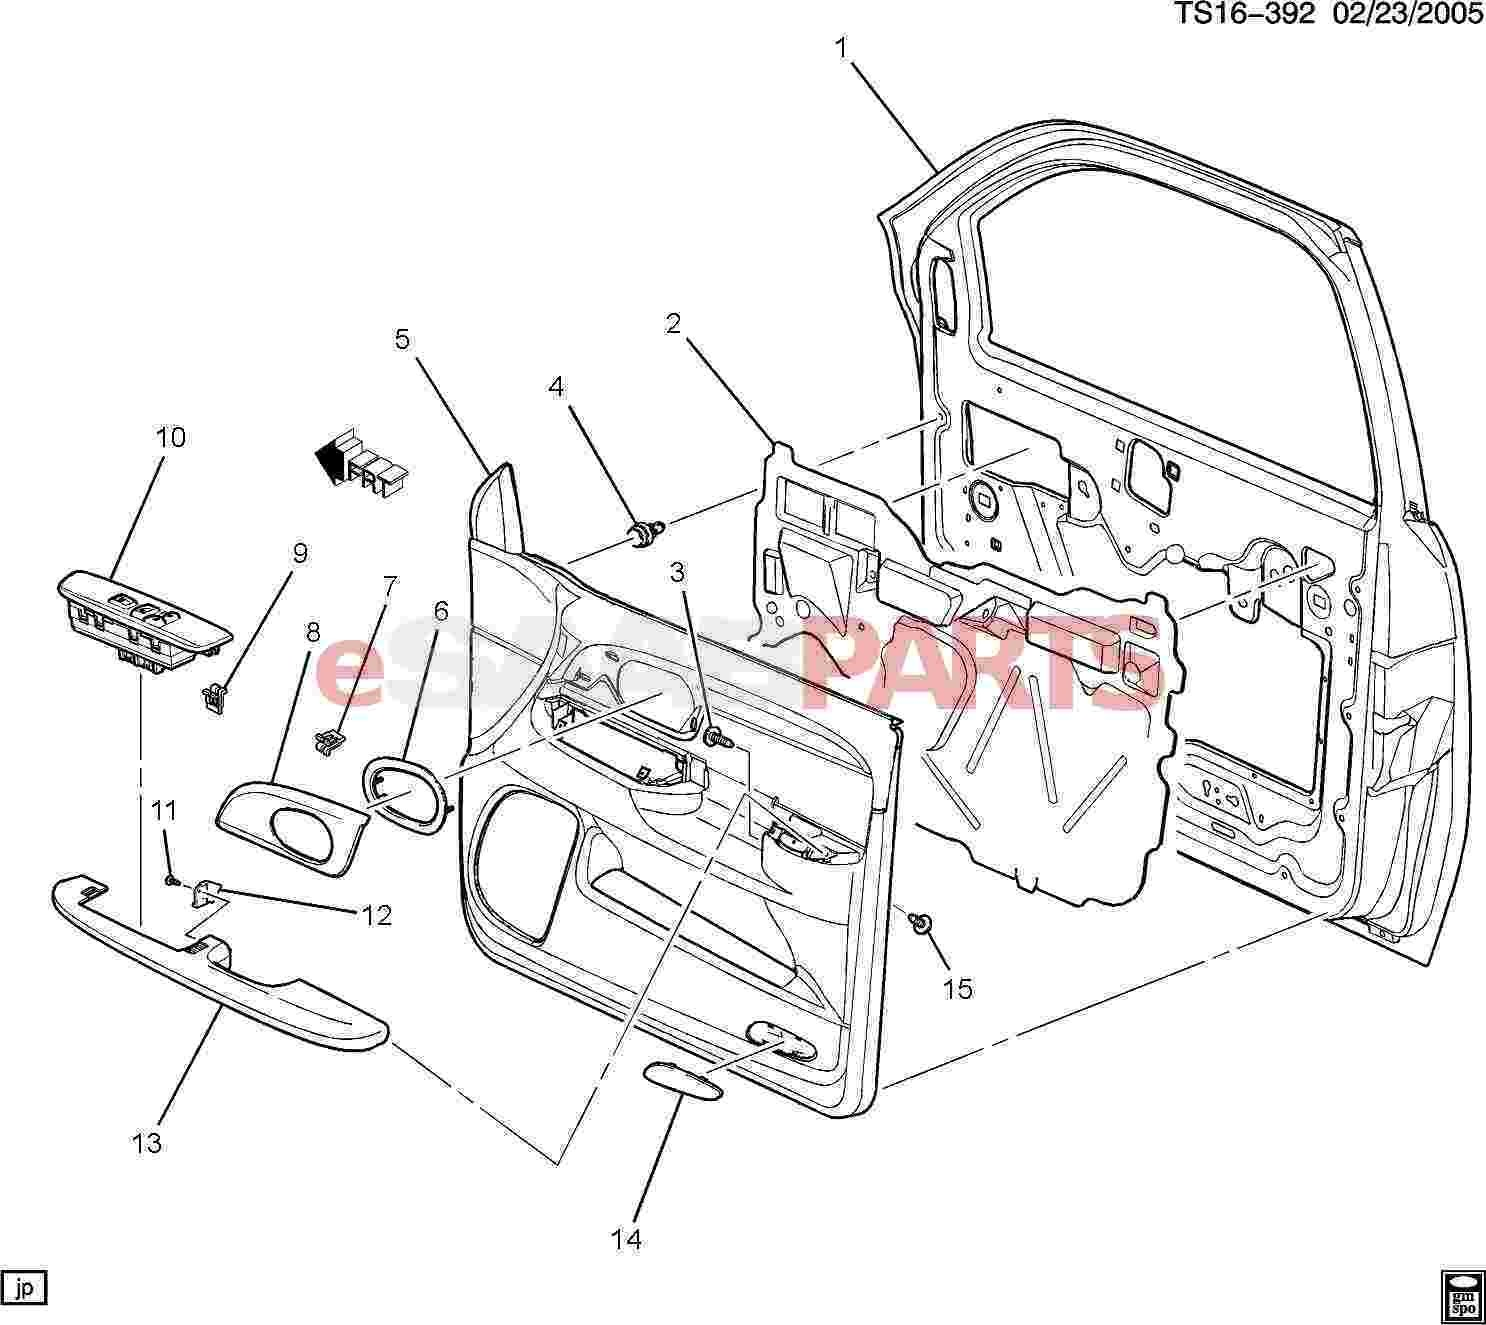 Diagram Of Car Parts Exterior Esaabparts Saab 9 7x Car Body Internal Parts Door Parts Of Diagram Of Car Parts Exterior